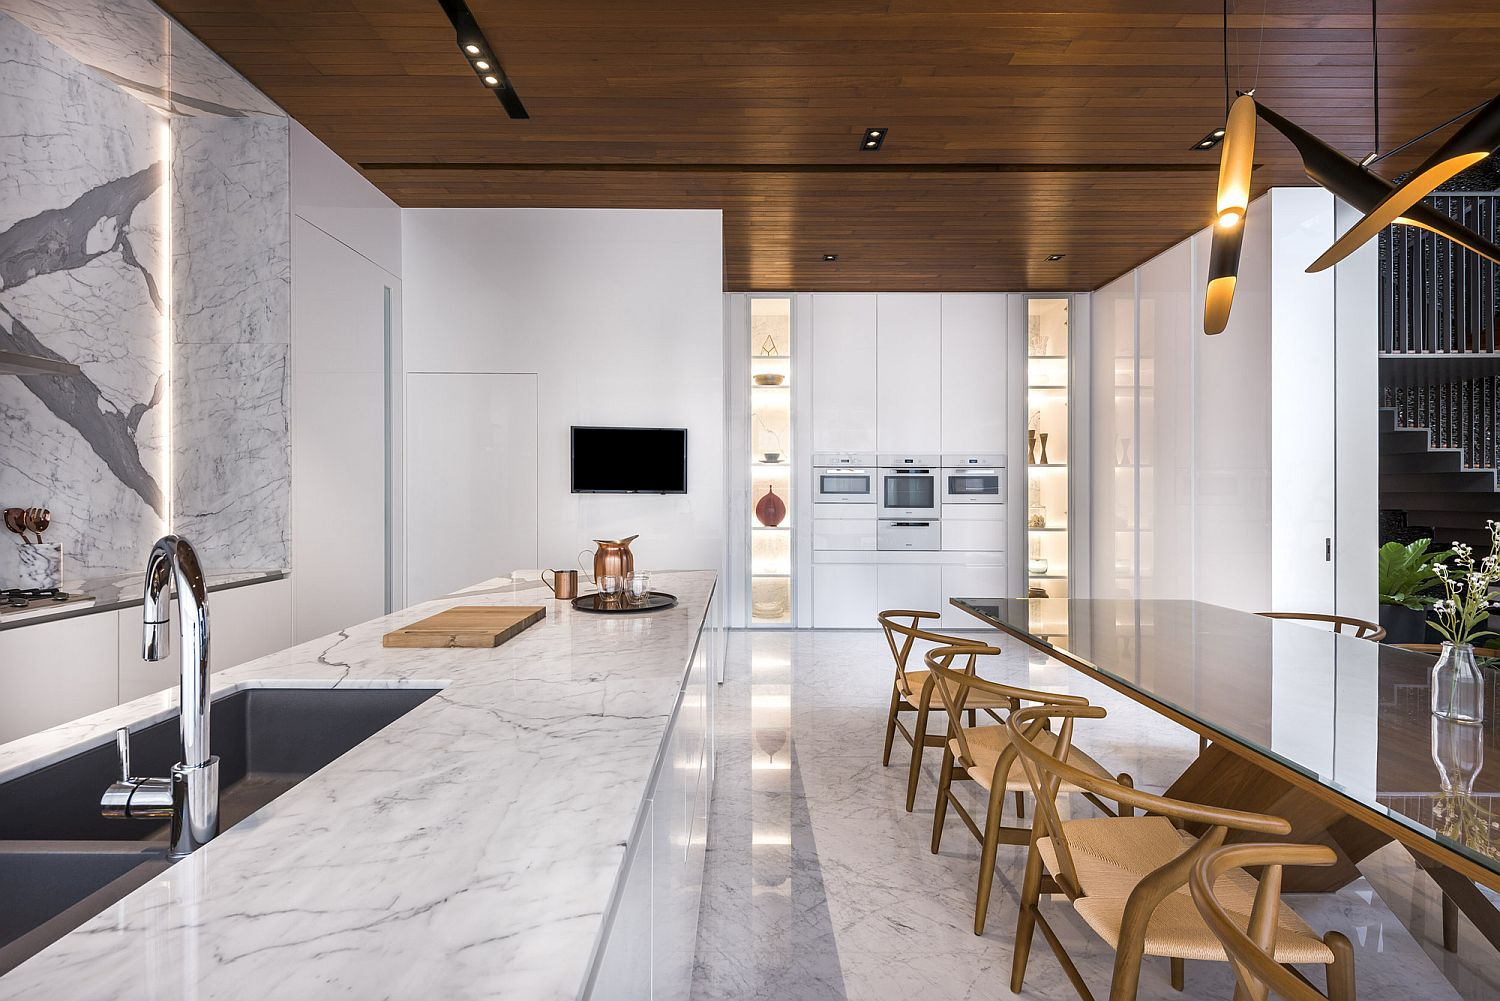 Stone, wood and polished finishes give the interior a stunning and cozy visual